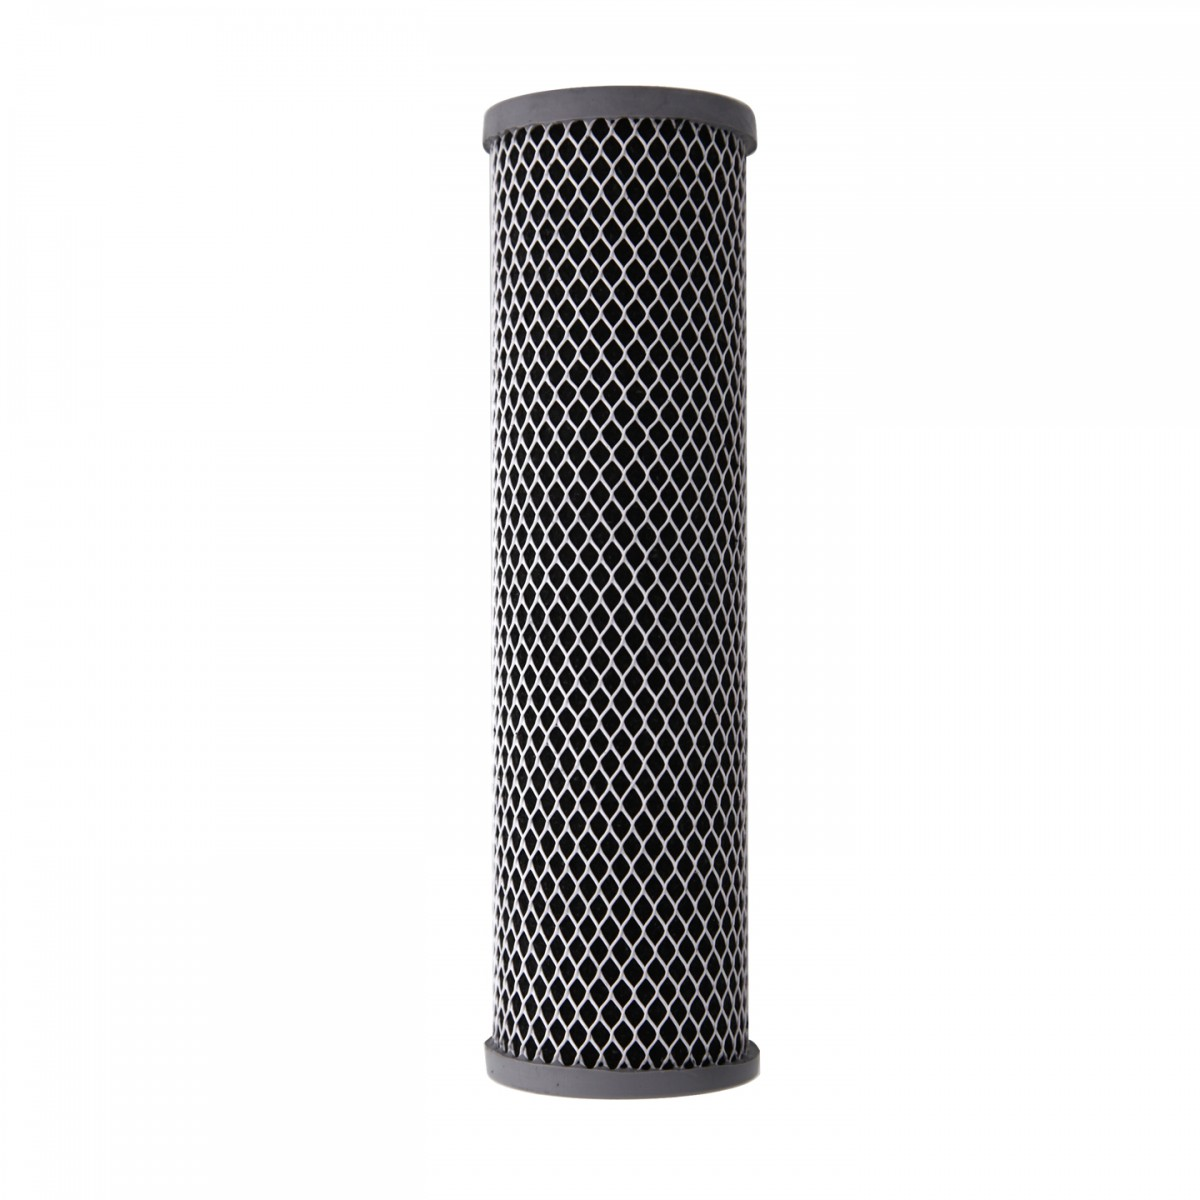 Hac 10 W Harmsco Activated Carbon Water Filter Cartridge